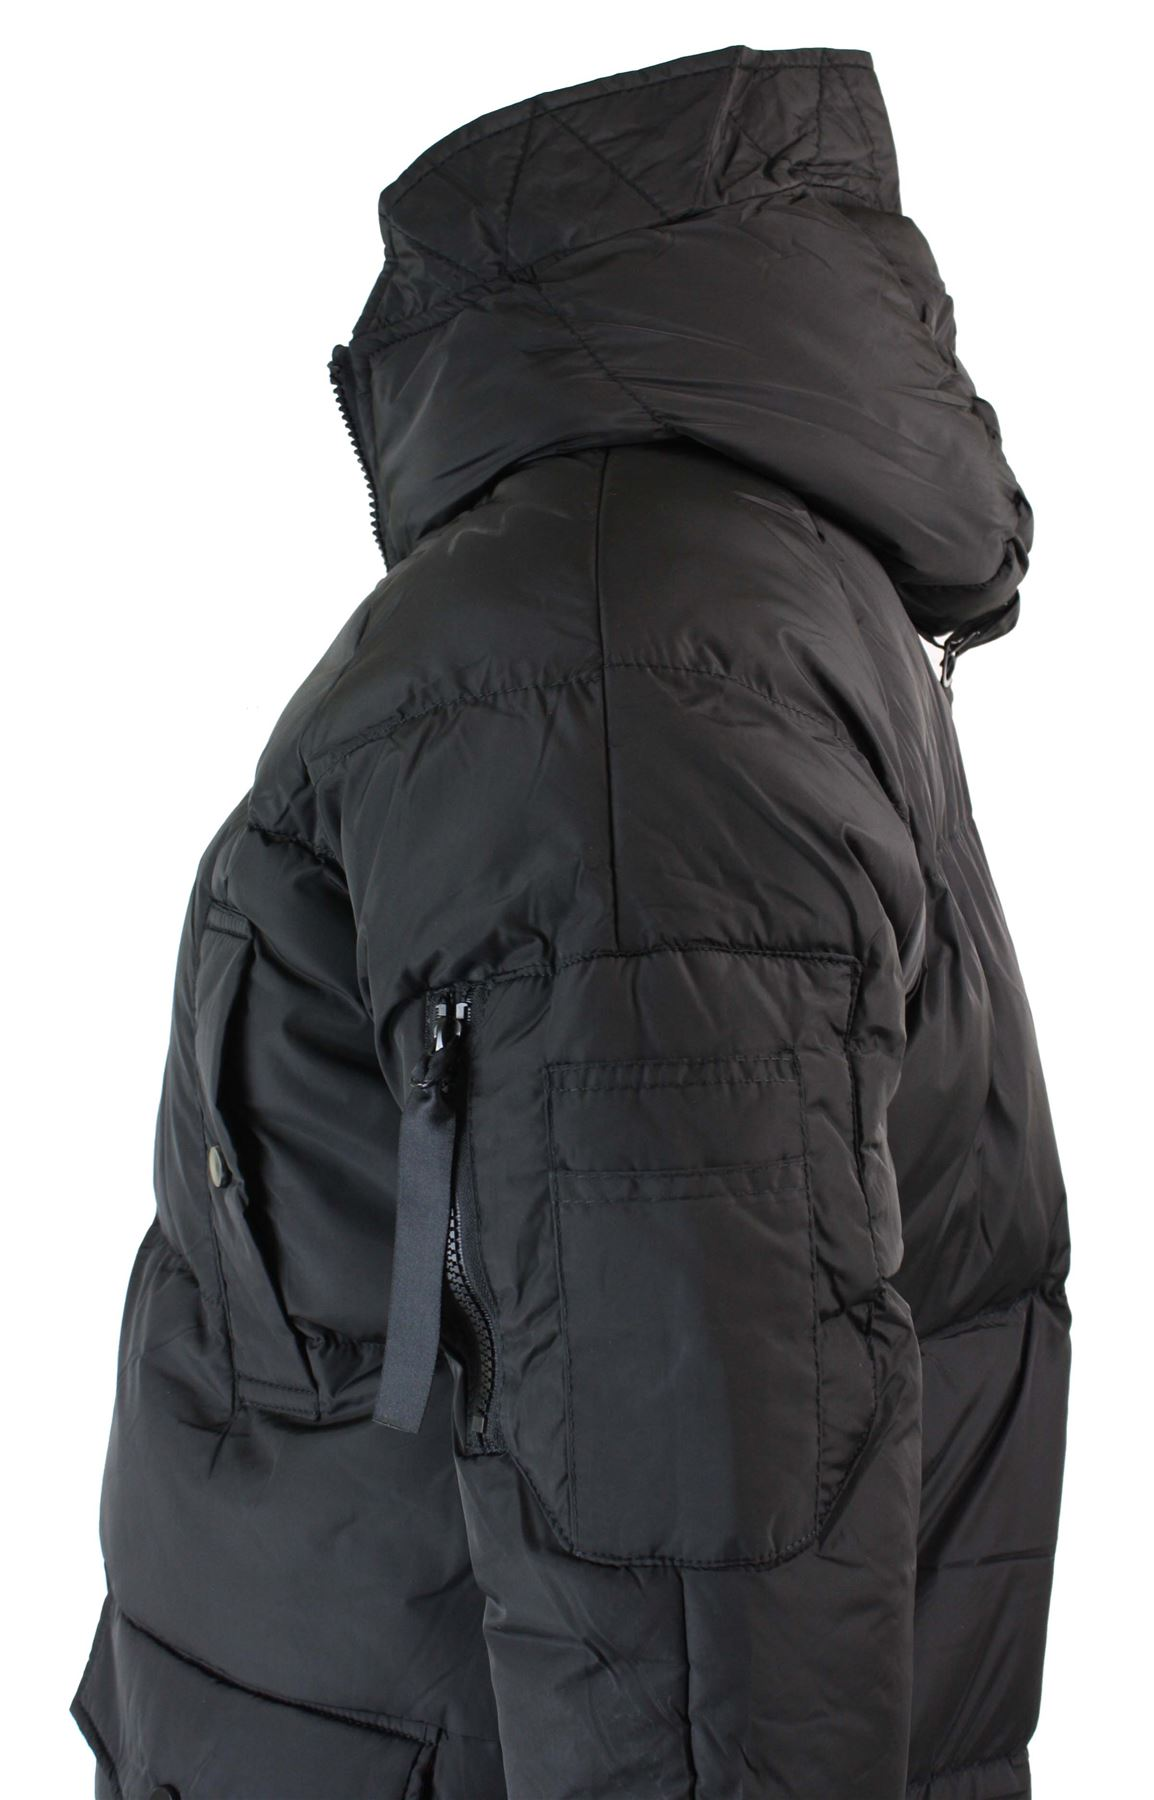 34f88a9468de7 Mens Puffer Quilted Long 3 4 Hood Jacket Over Coat Casual Warm Down ...